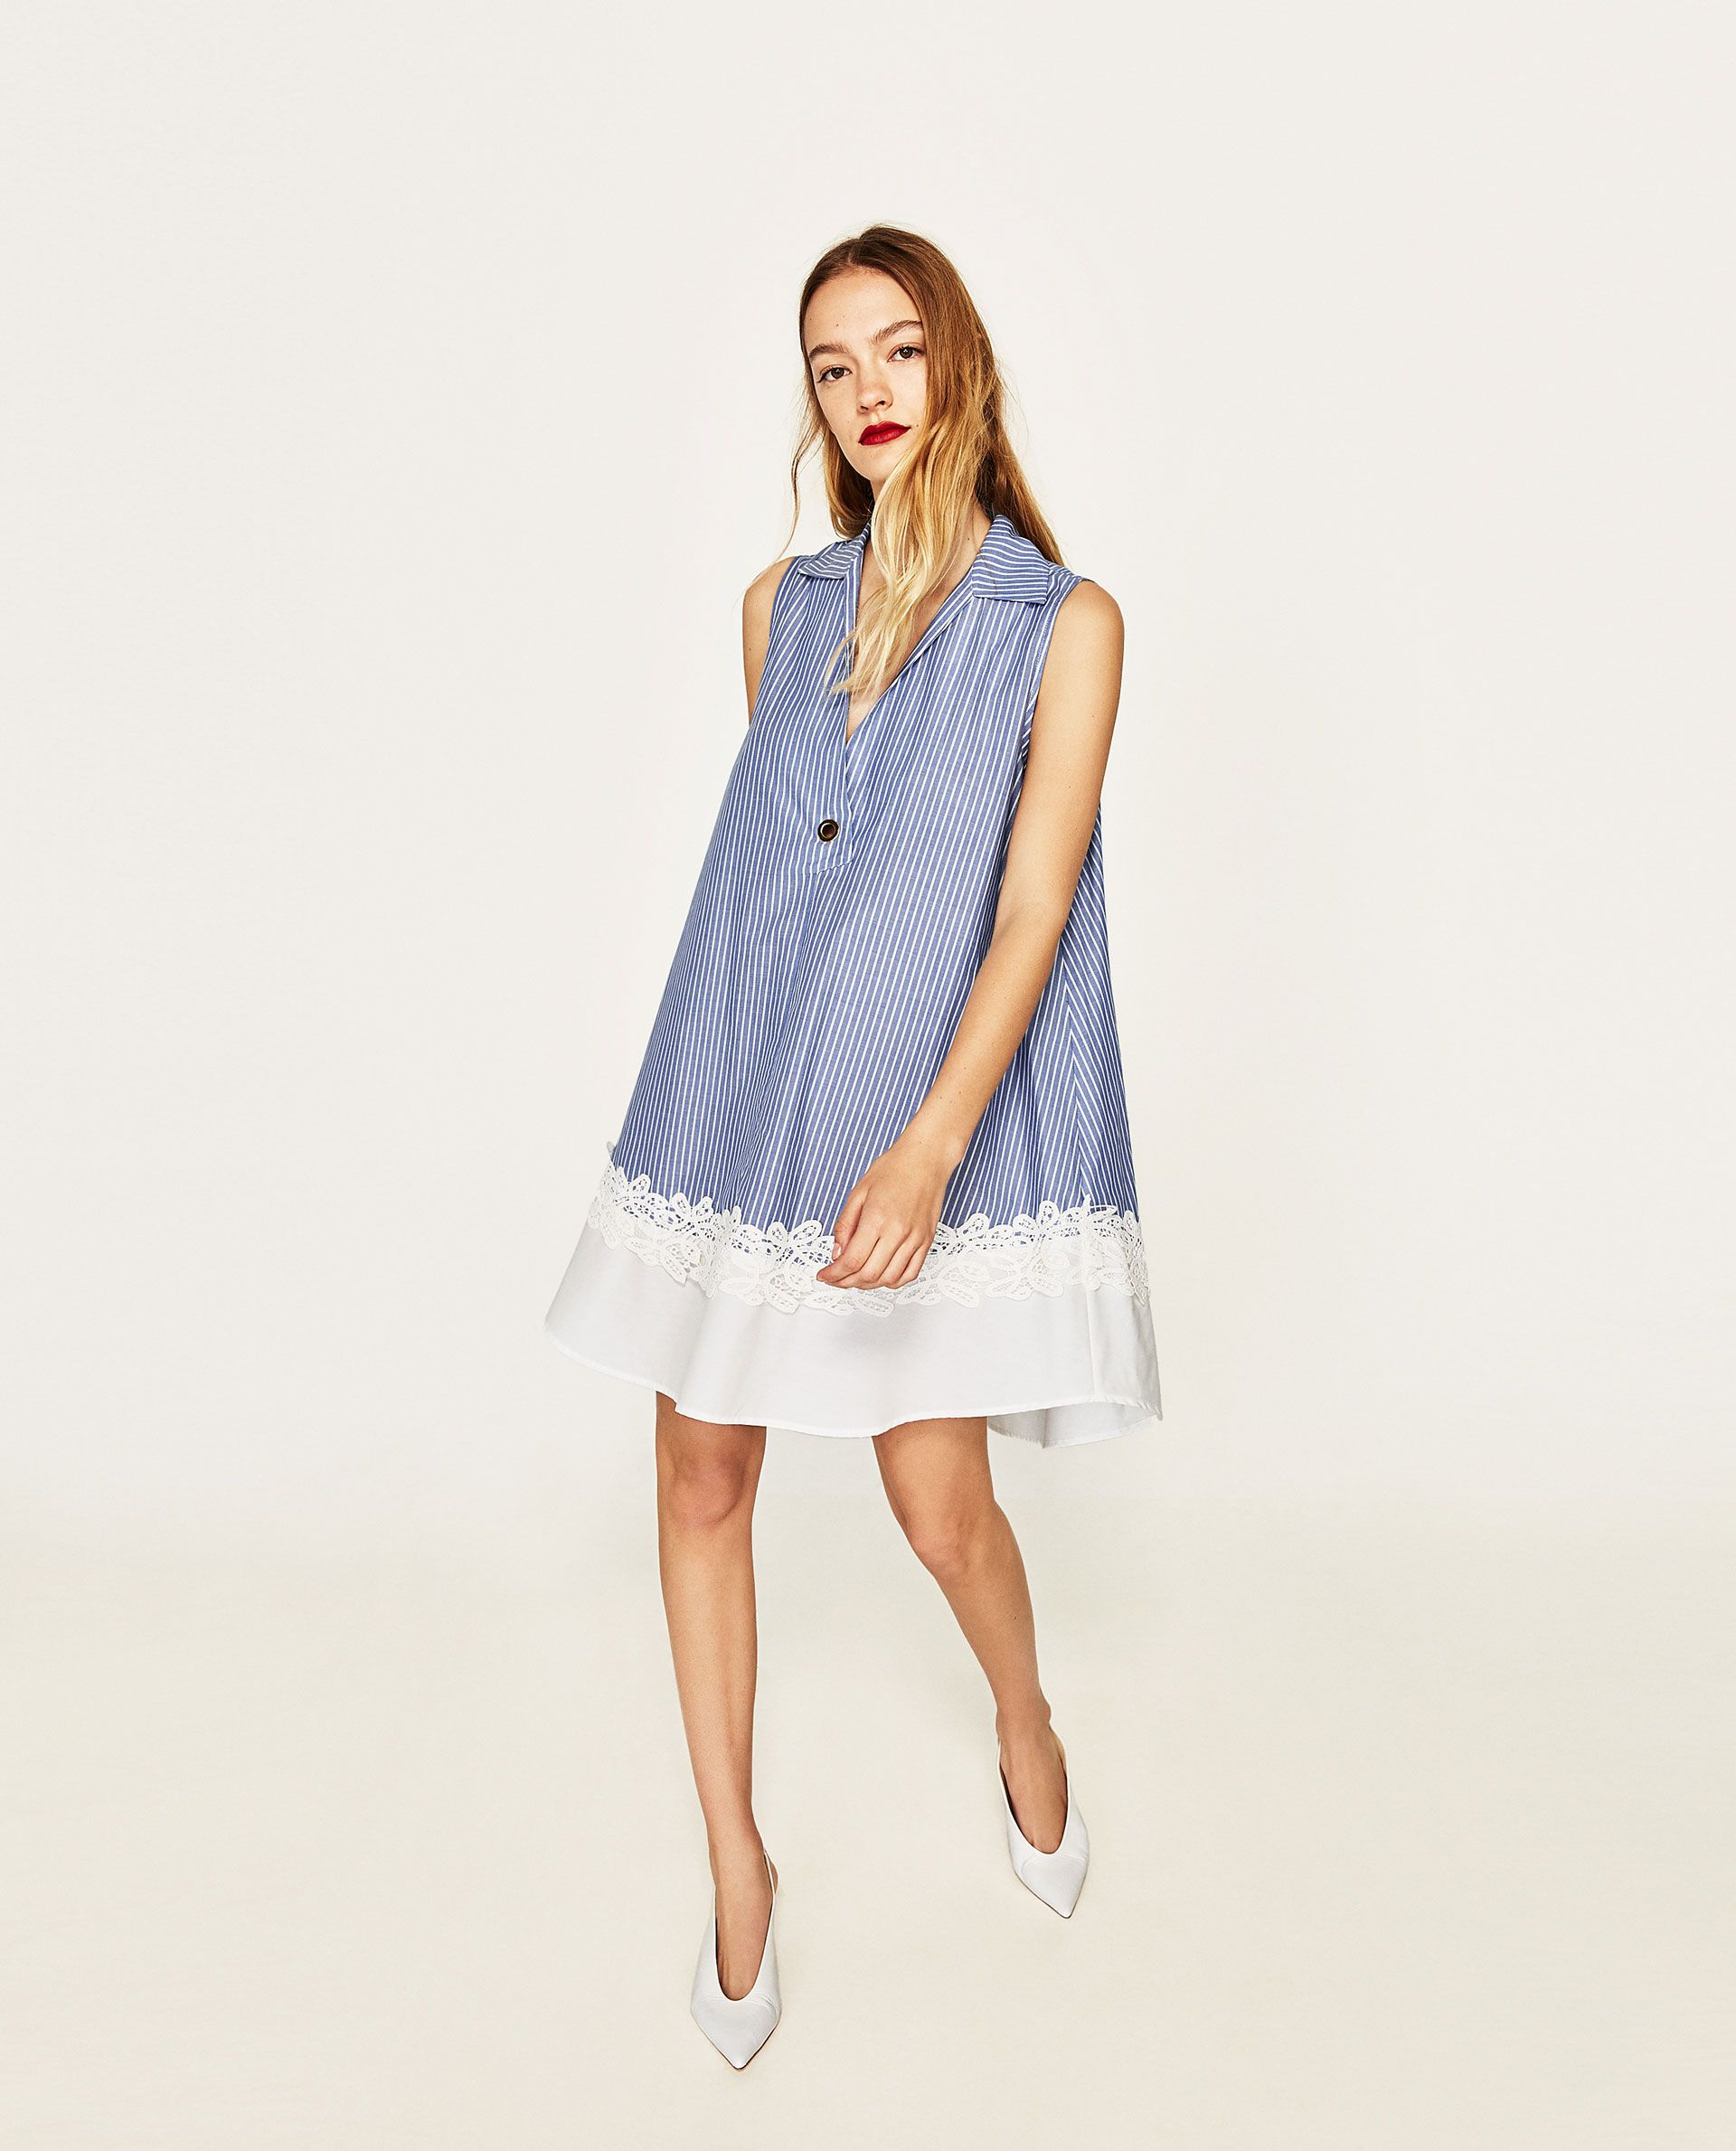 Contrast lace dress zara  contrast poplin lace dress  ZARA   Under   Favorite Steals